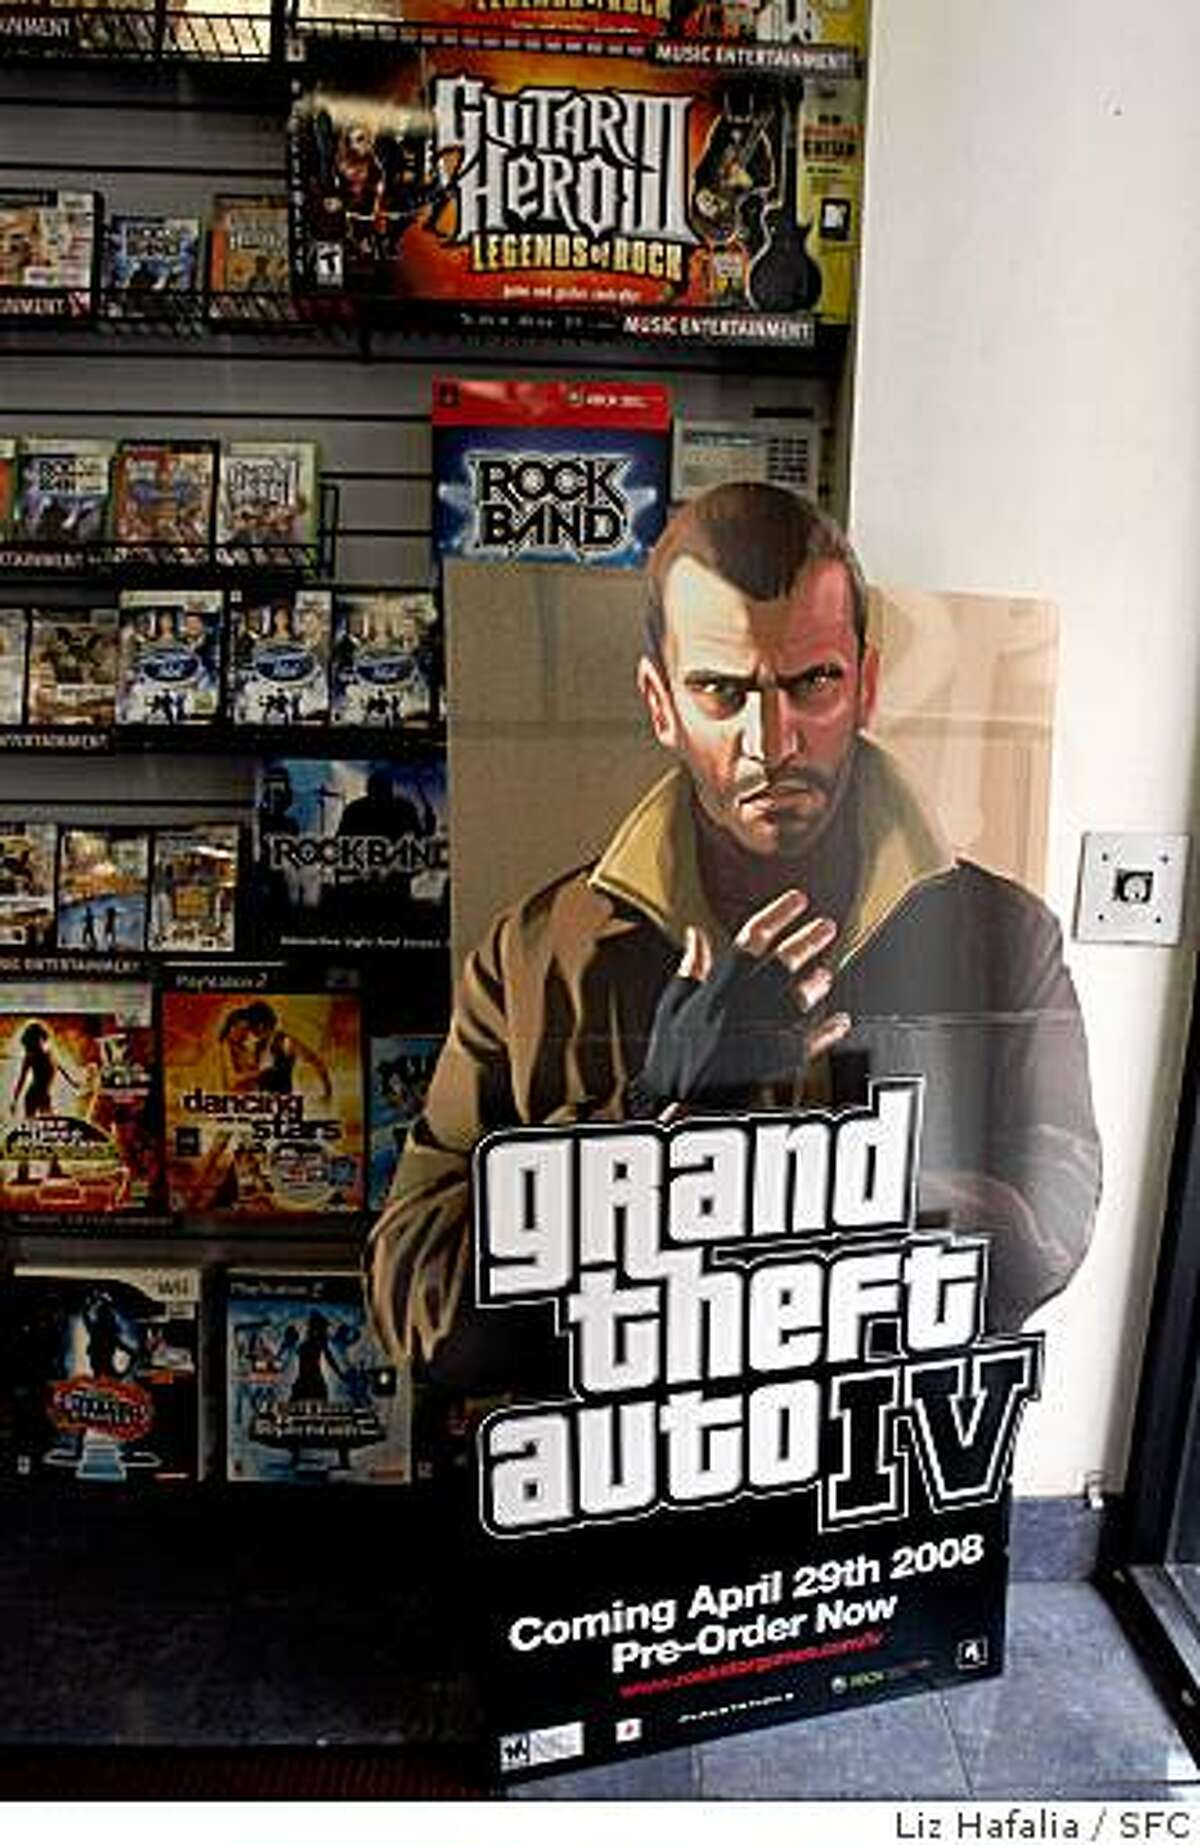 Display ad of graphic video game, Grand Theft Auto, on display at Game Stop the day before it's sale in San Francisco, Calif., on Monday, April 28, 2008. Photo by Liz Hafalia / San Francisco Chronicle